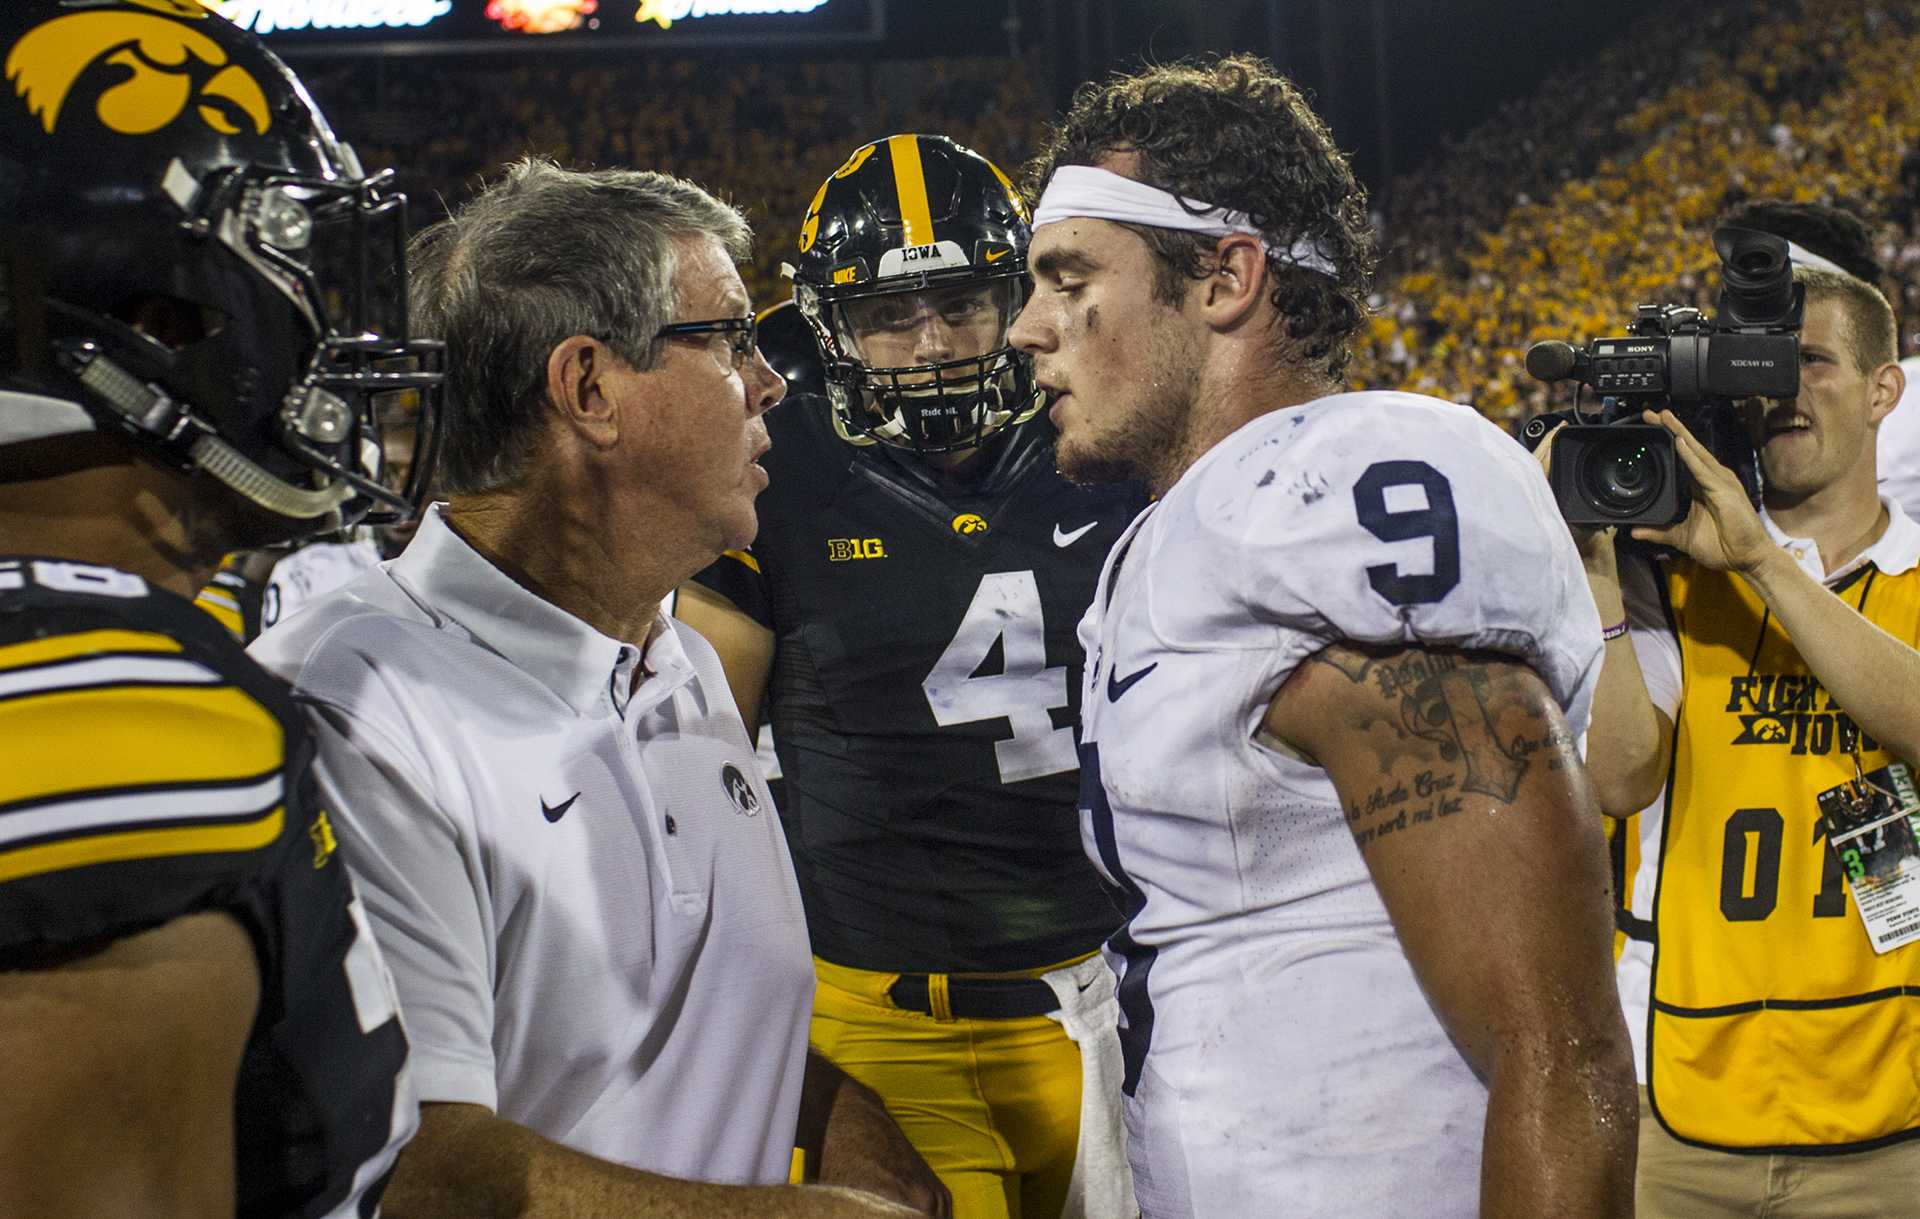 Iowa quarterbacks coach Ken O'Keefe exchanges words with Penn State quarterback Trace McSorley after McSorley punted the ball in celebration after Iowa's game against Penn State at Kinnick Stadium on Sept. 23, 2017. Penn State defeated Iowa 21-19 on a last second touchdown pass.